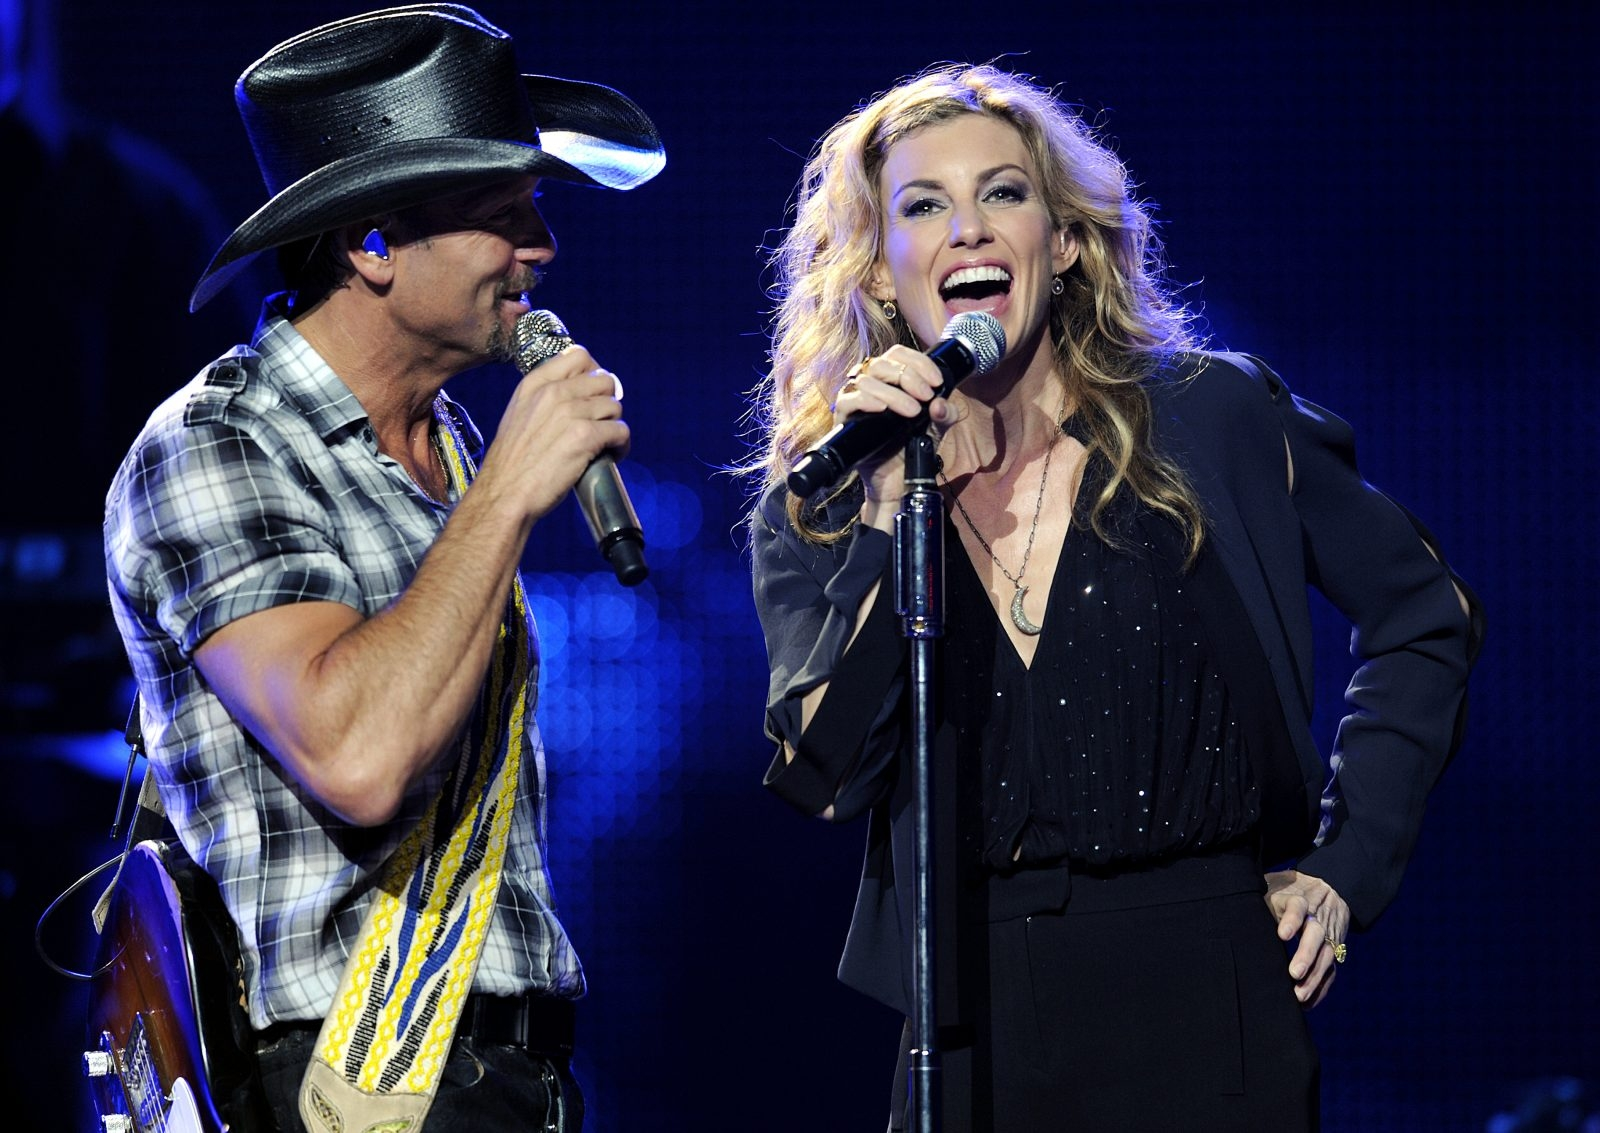 Tim McGraw and Faith Hill to play KeyBank Center next year